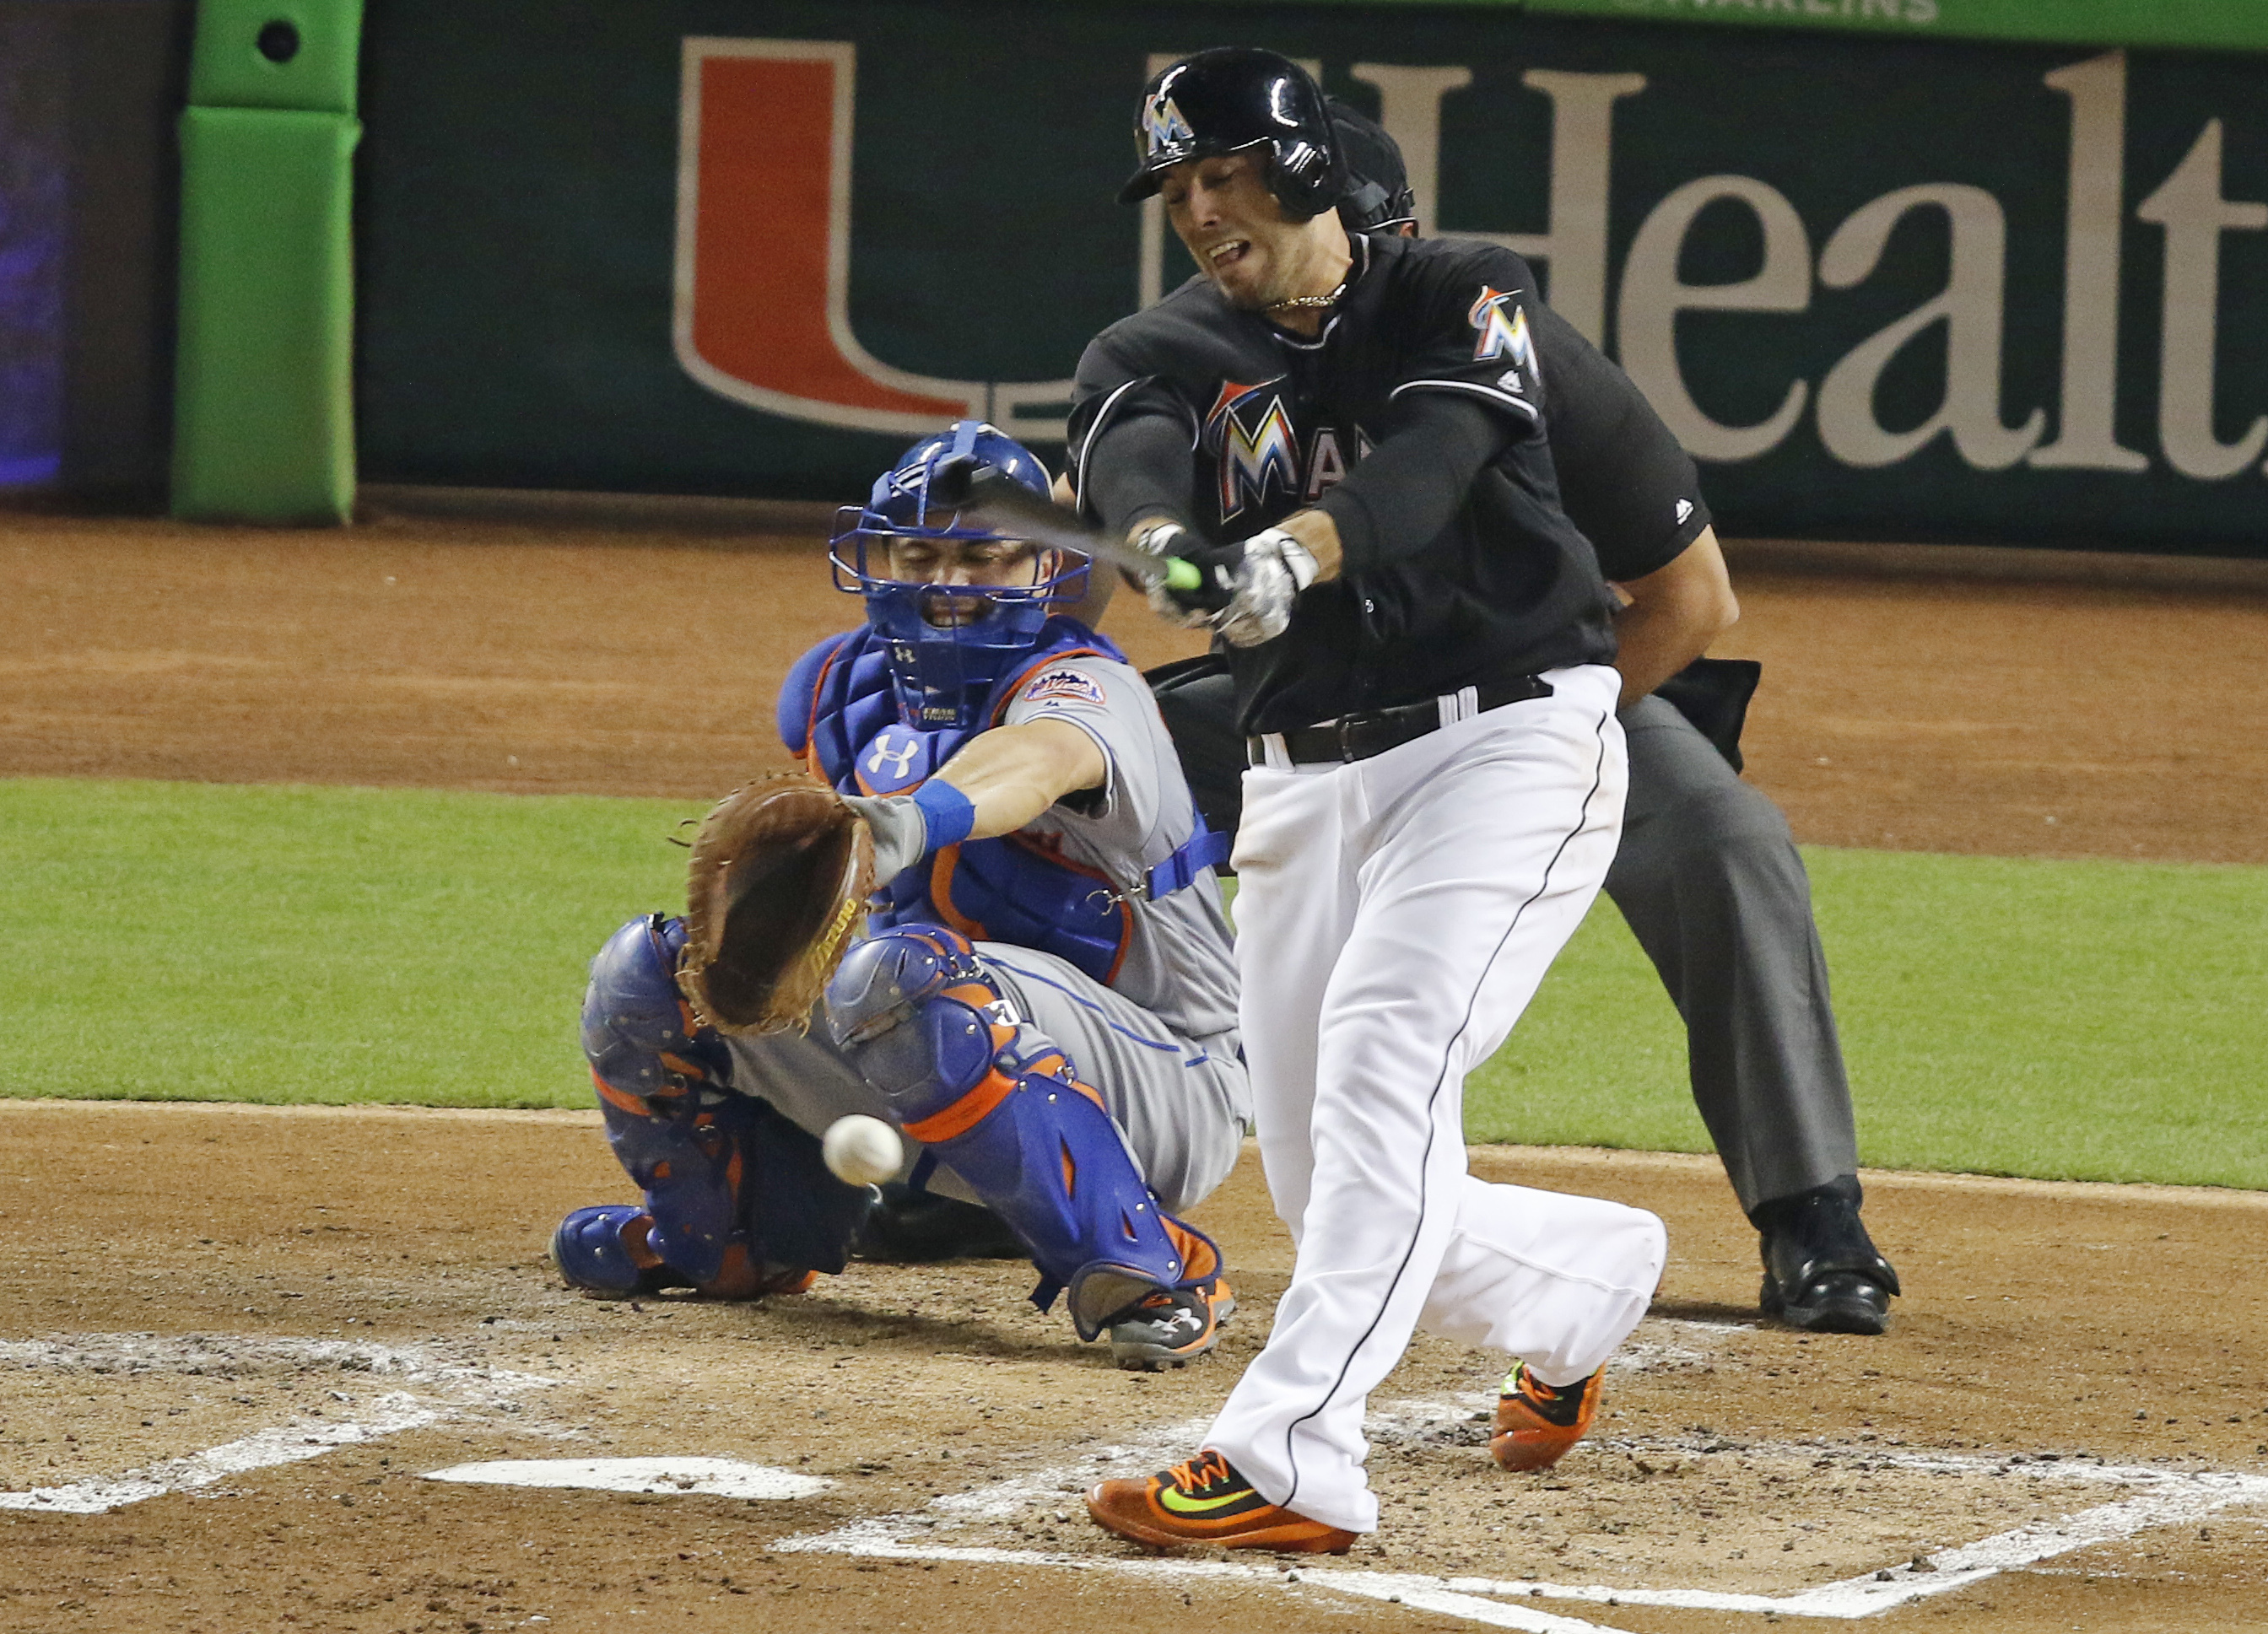 Miami Marlins' Jose Fernandez hits an RBI-single in the second inning in front of New York Mets catcher Travis d'Arnaud during a baseball game in Miami, Saturday, July 23, 2016. (AP Photo/Joe Skipper)